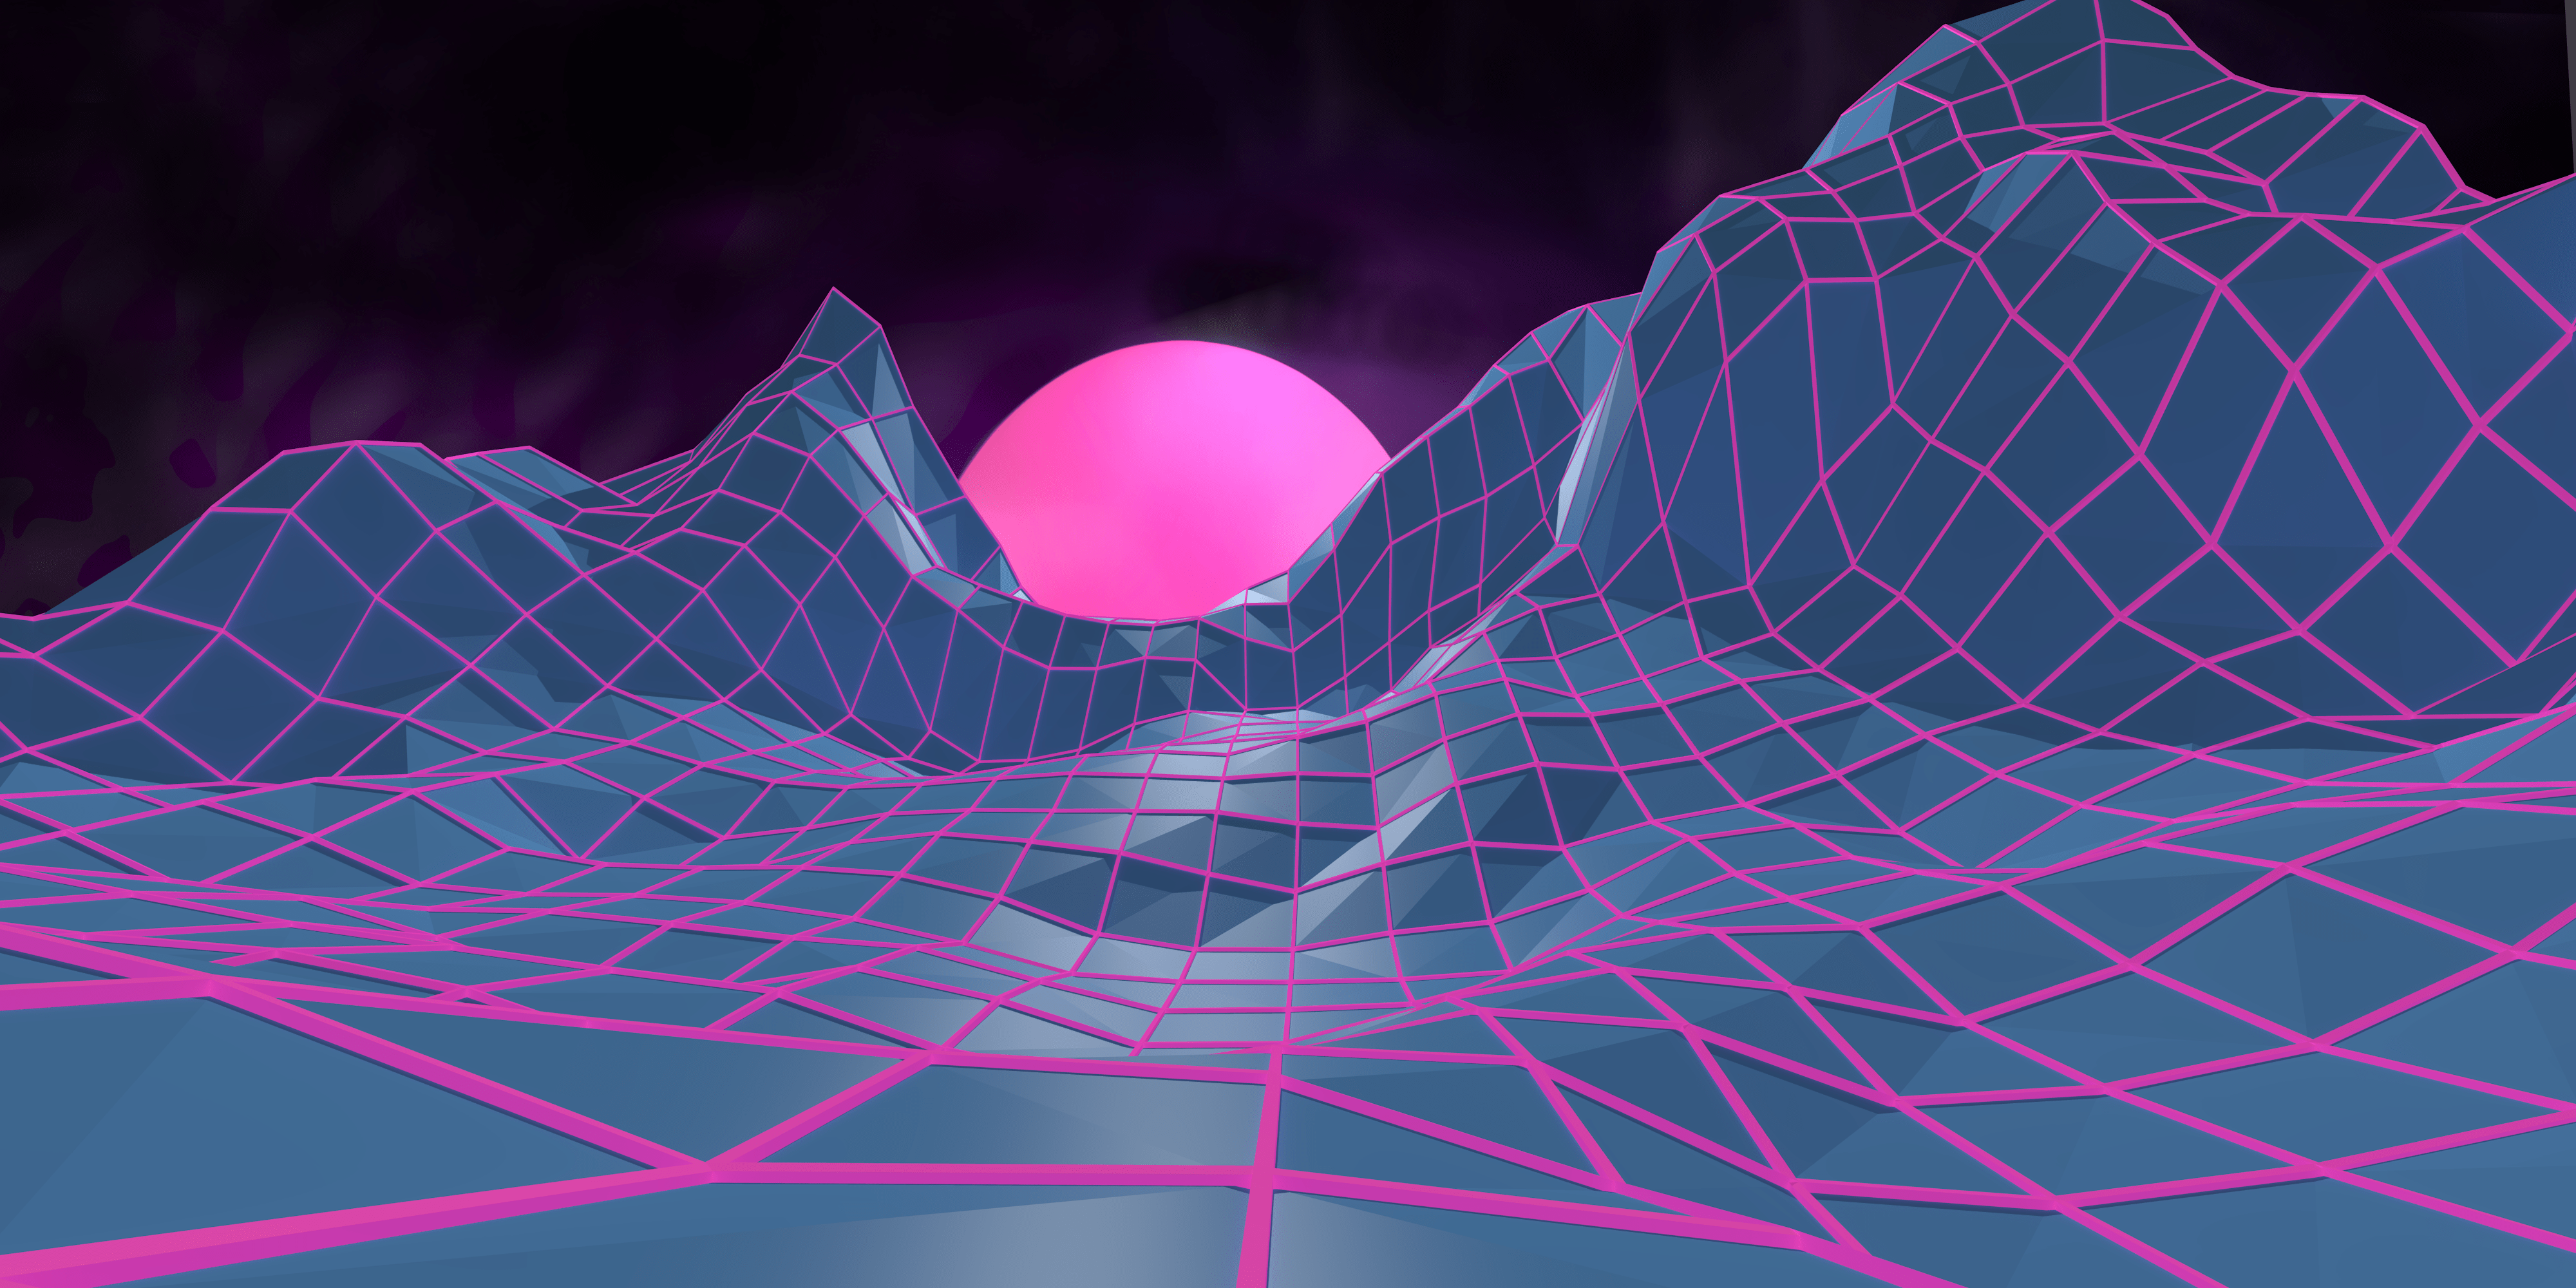 Buddha 3d Live Wallpaper My First Experiment With 3d Vaporwave I Might Animate A